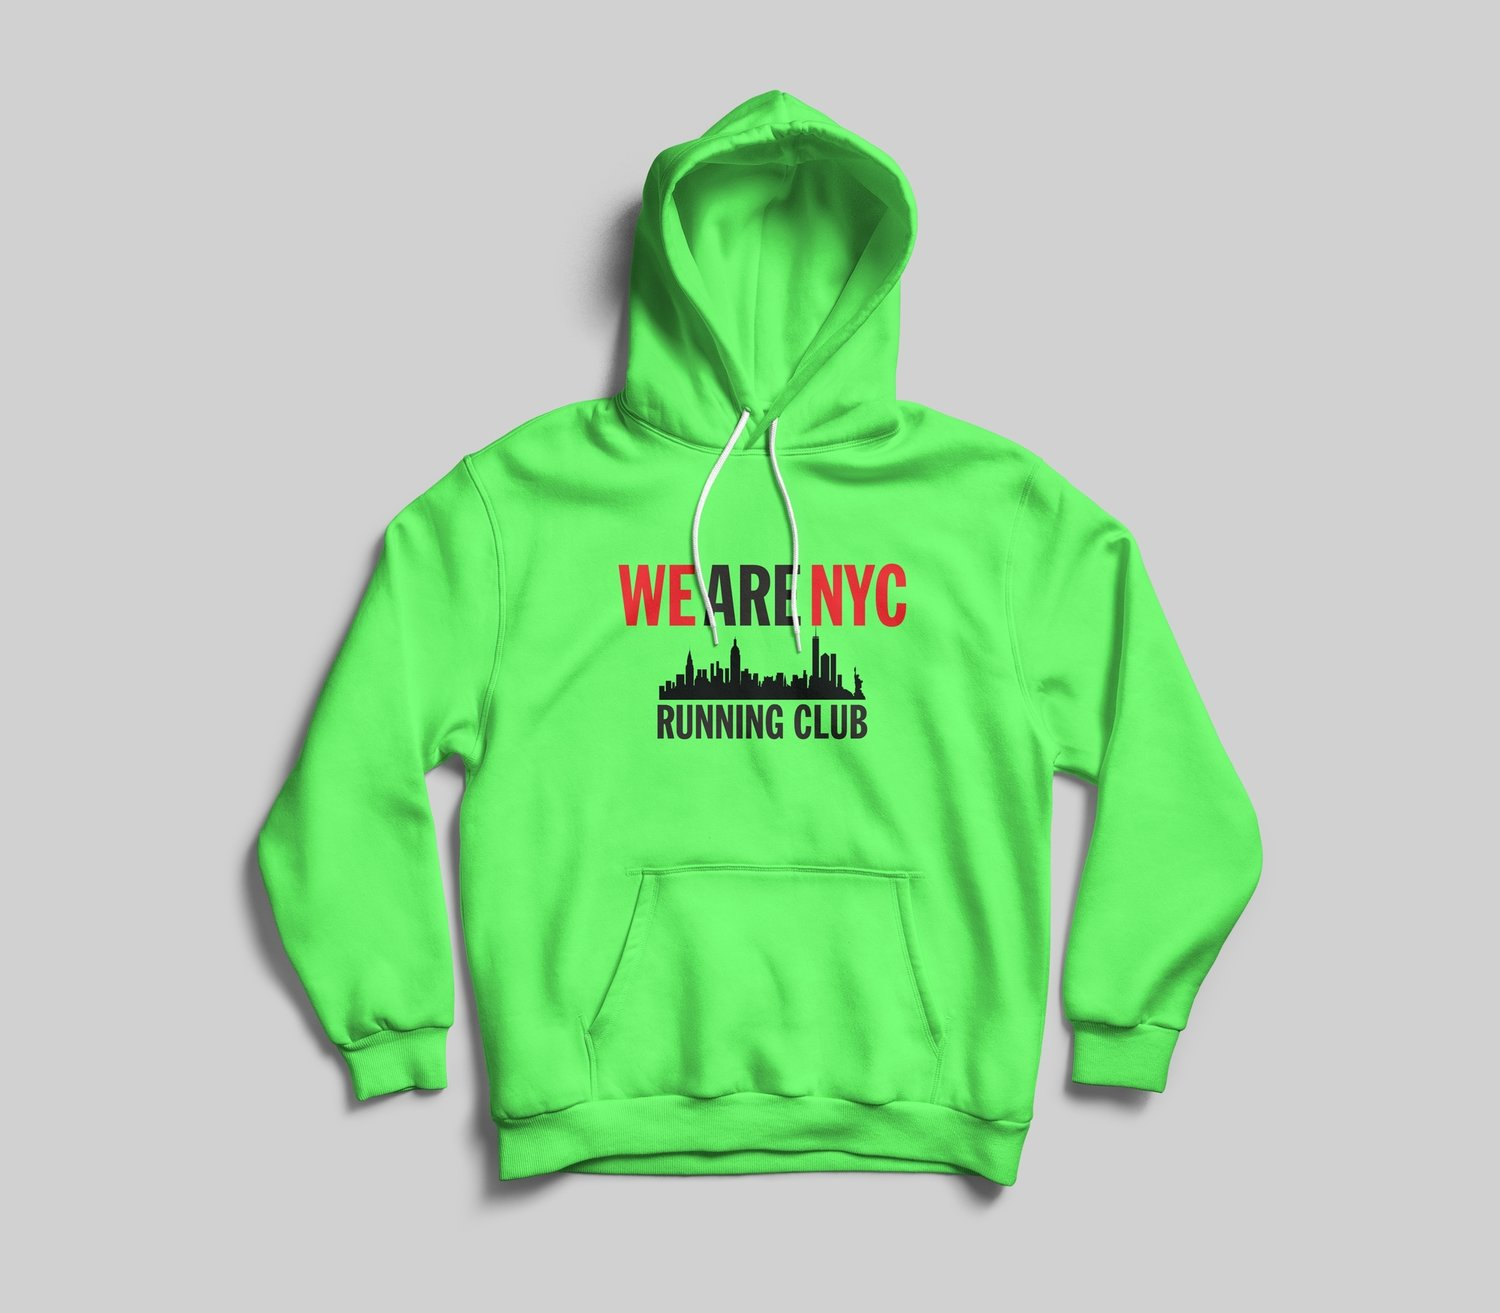 WE ARE NYC IMPACT LOGO HOODED SWEATSHIRT - AVAILABLE IN 7 COLORS!